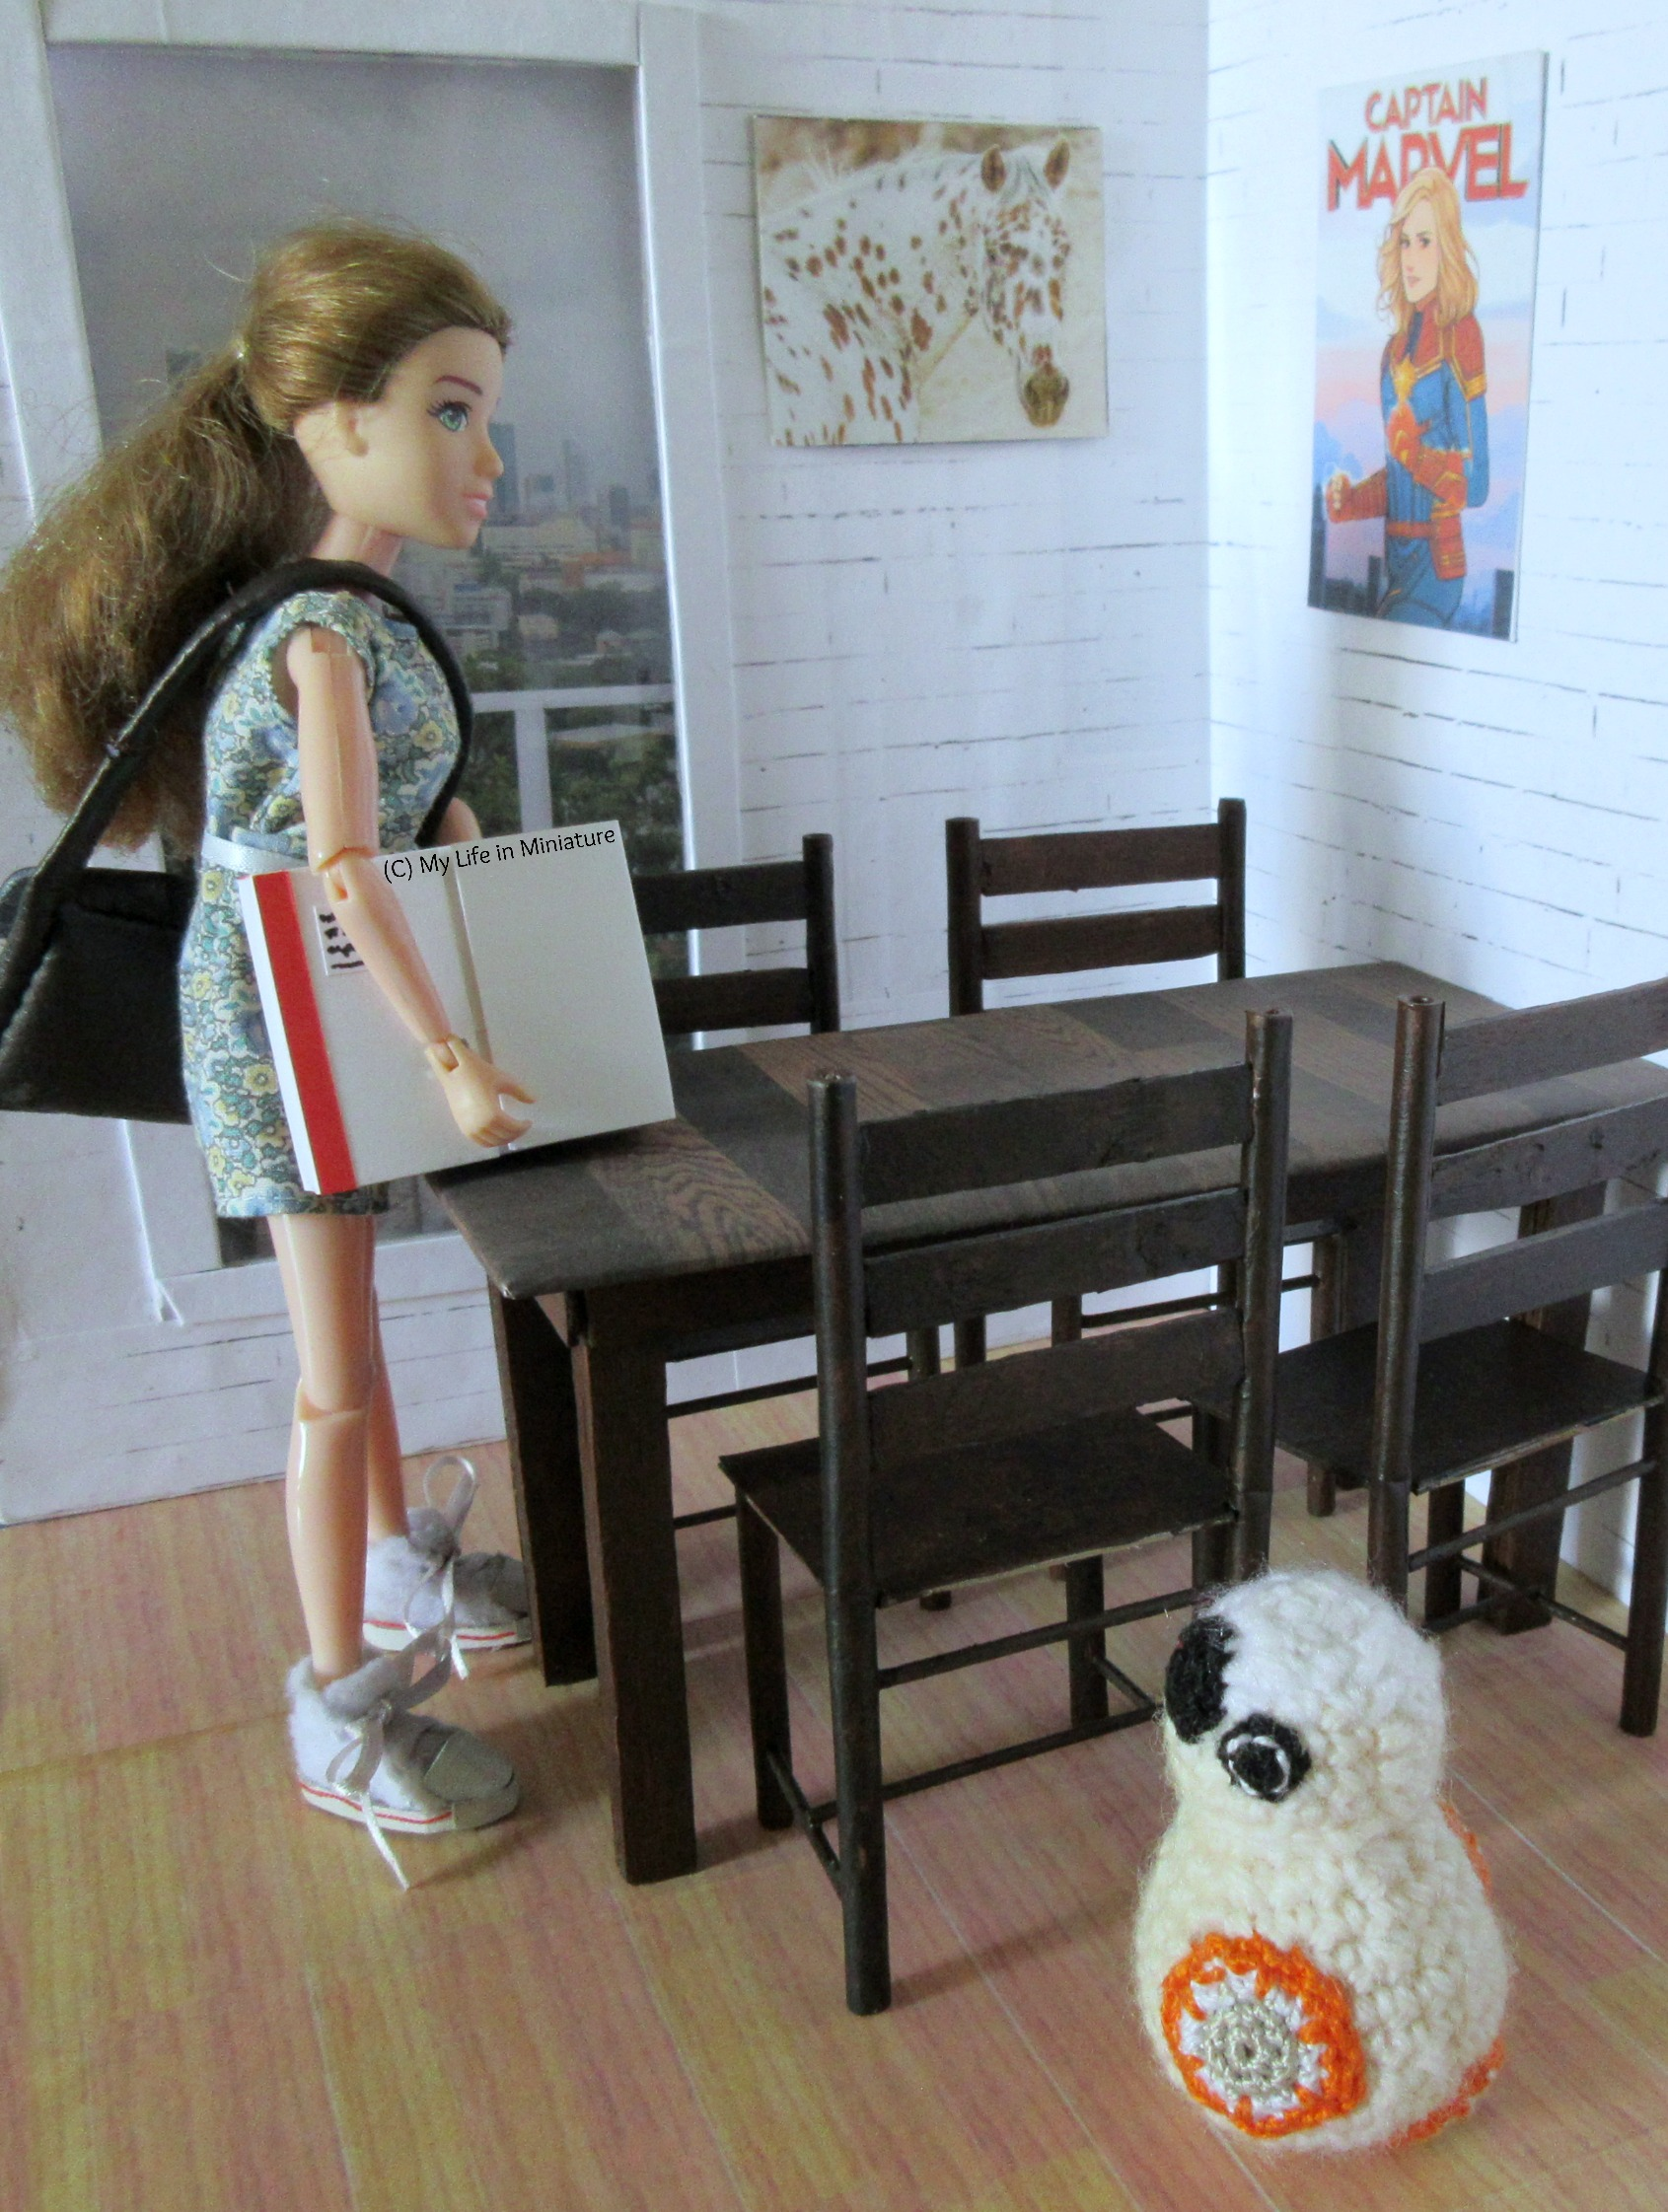 Sarah is placing a large parcel box on her dining room table while BB-8 watches on. She has her brown satchel with her, having just got home.